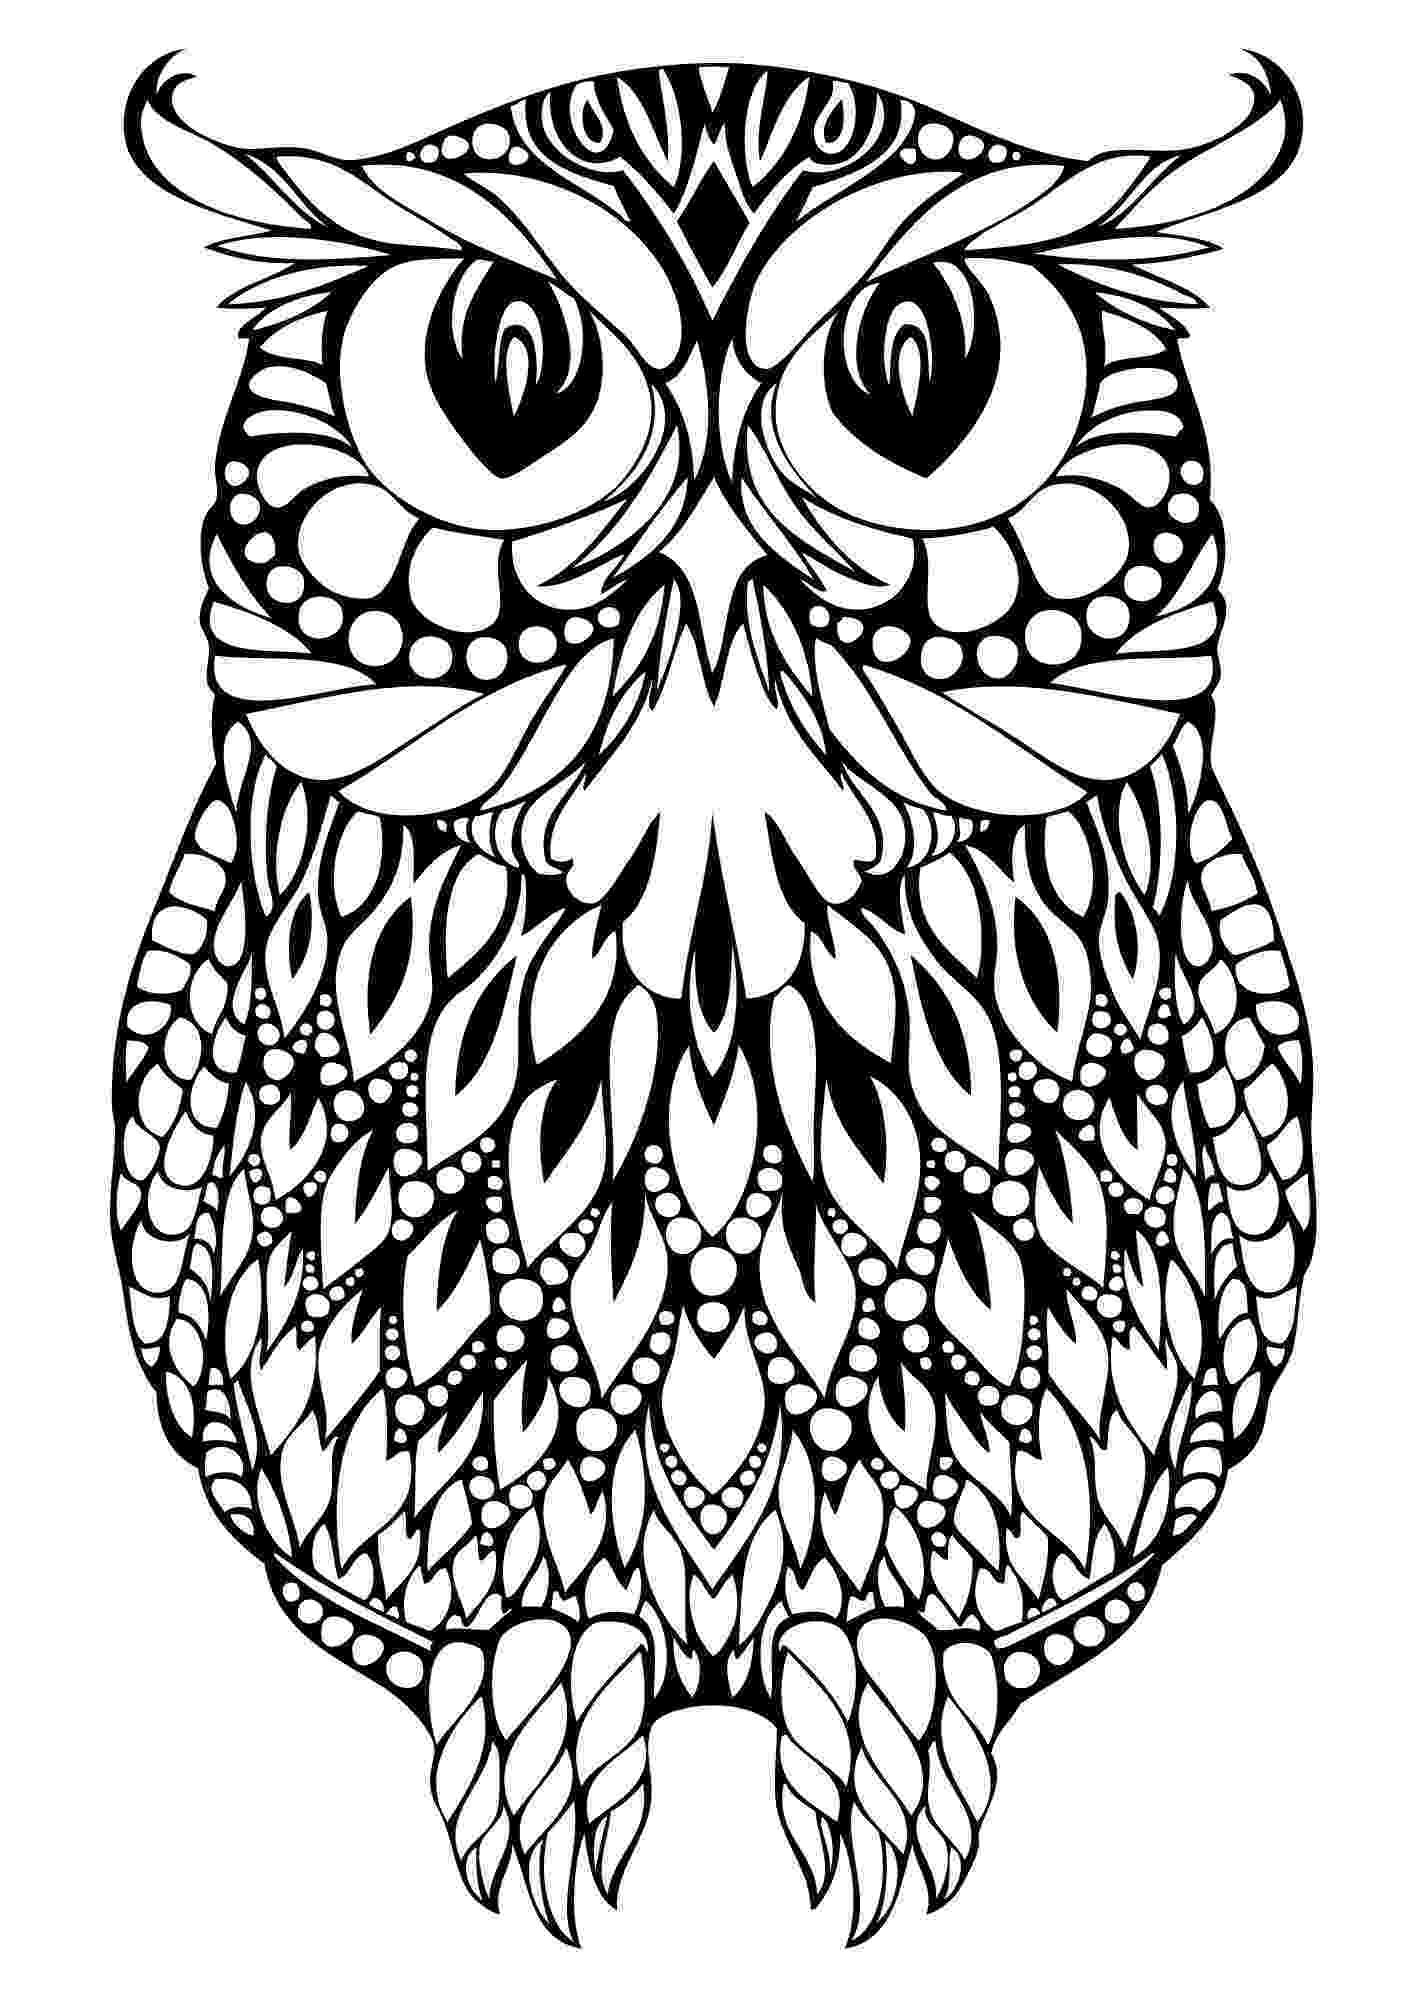 printable owl images owl coloring pages koloringpages owl coloring pages owl printable images